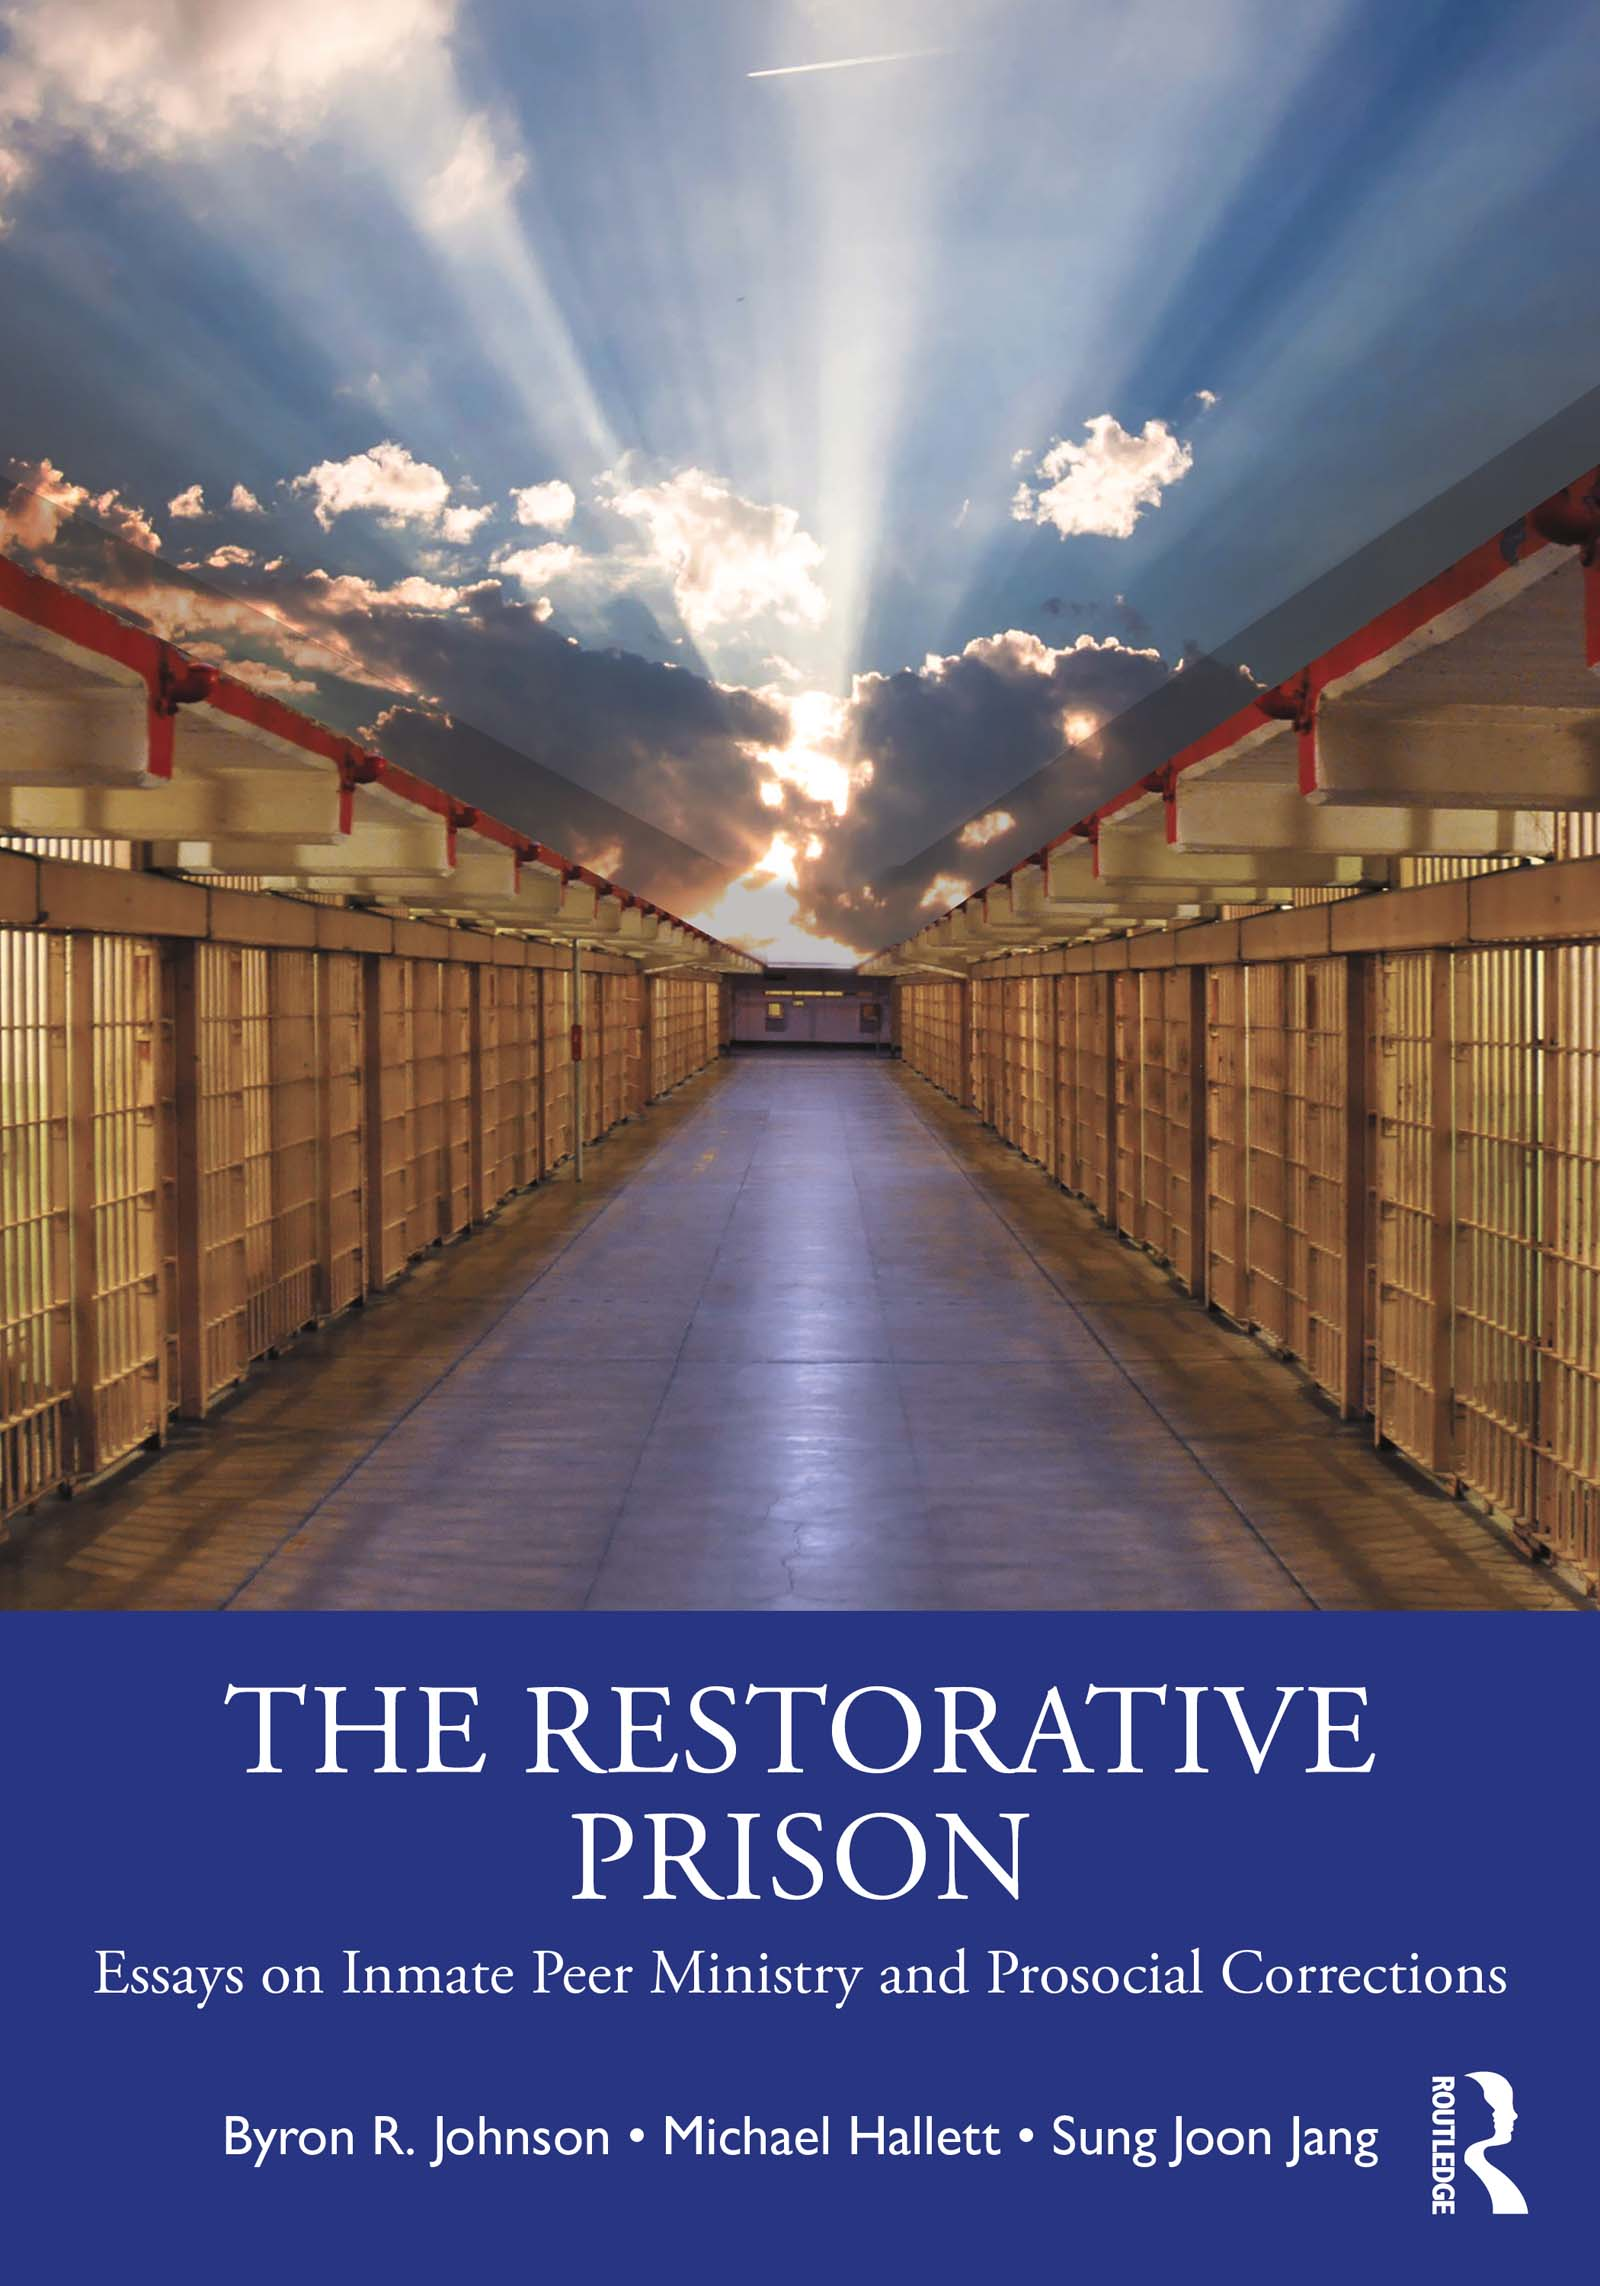 Lessons We Can Learn from Prisoners